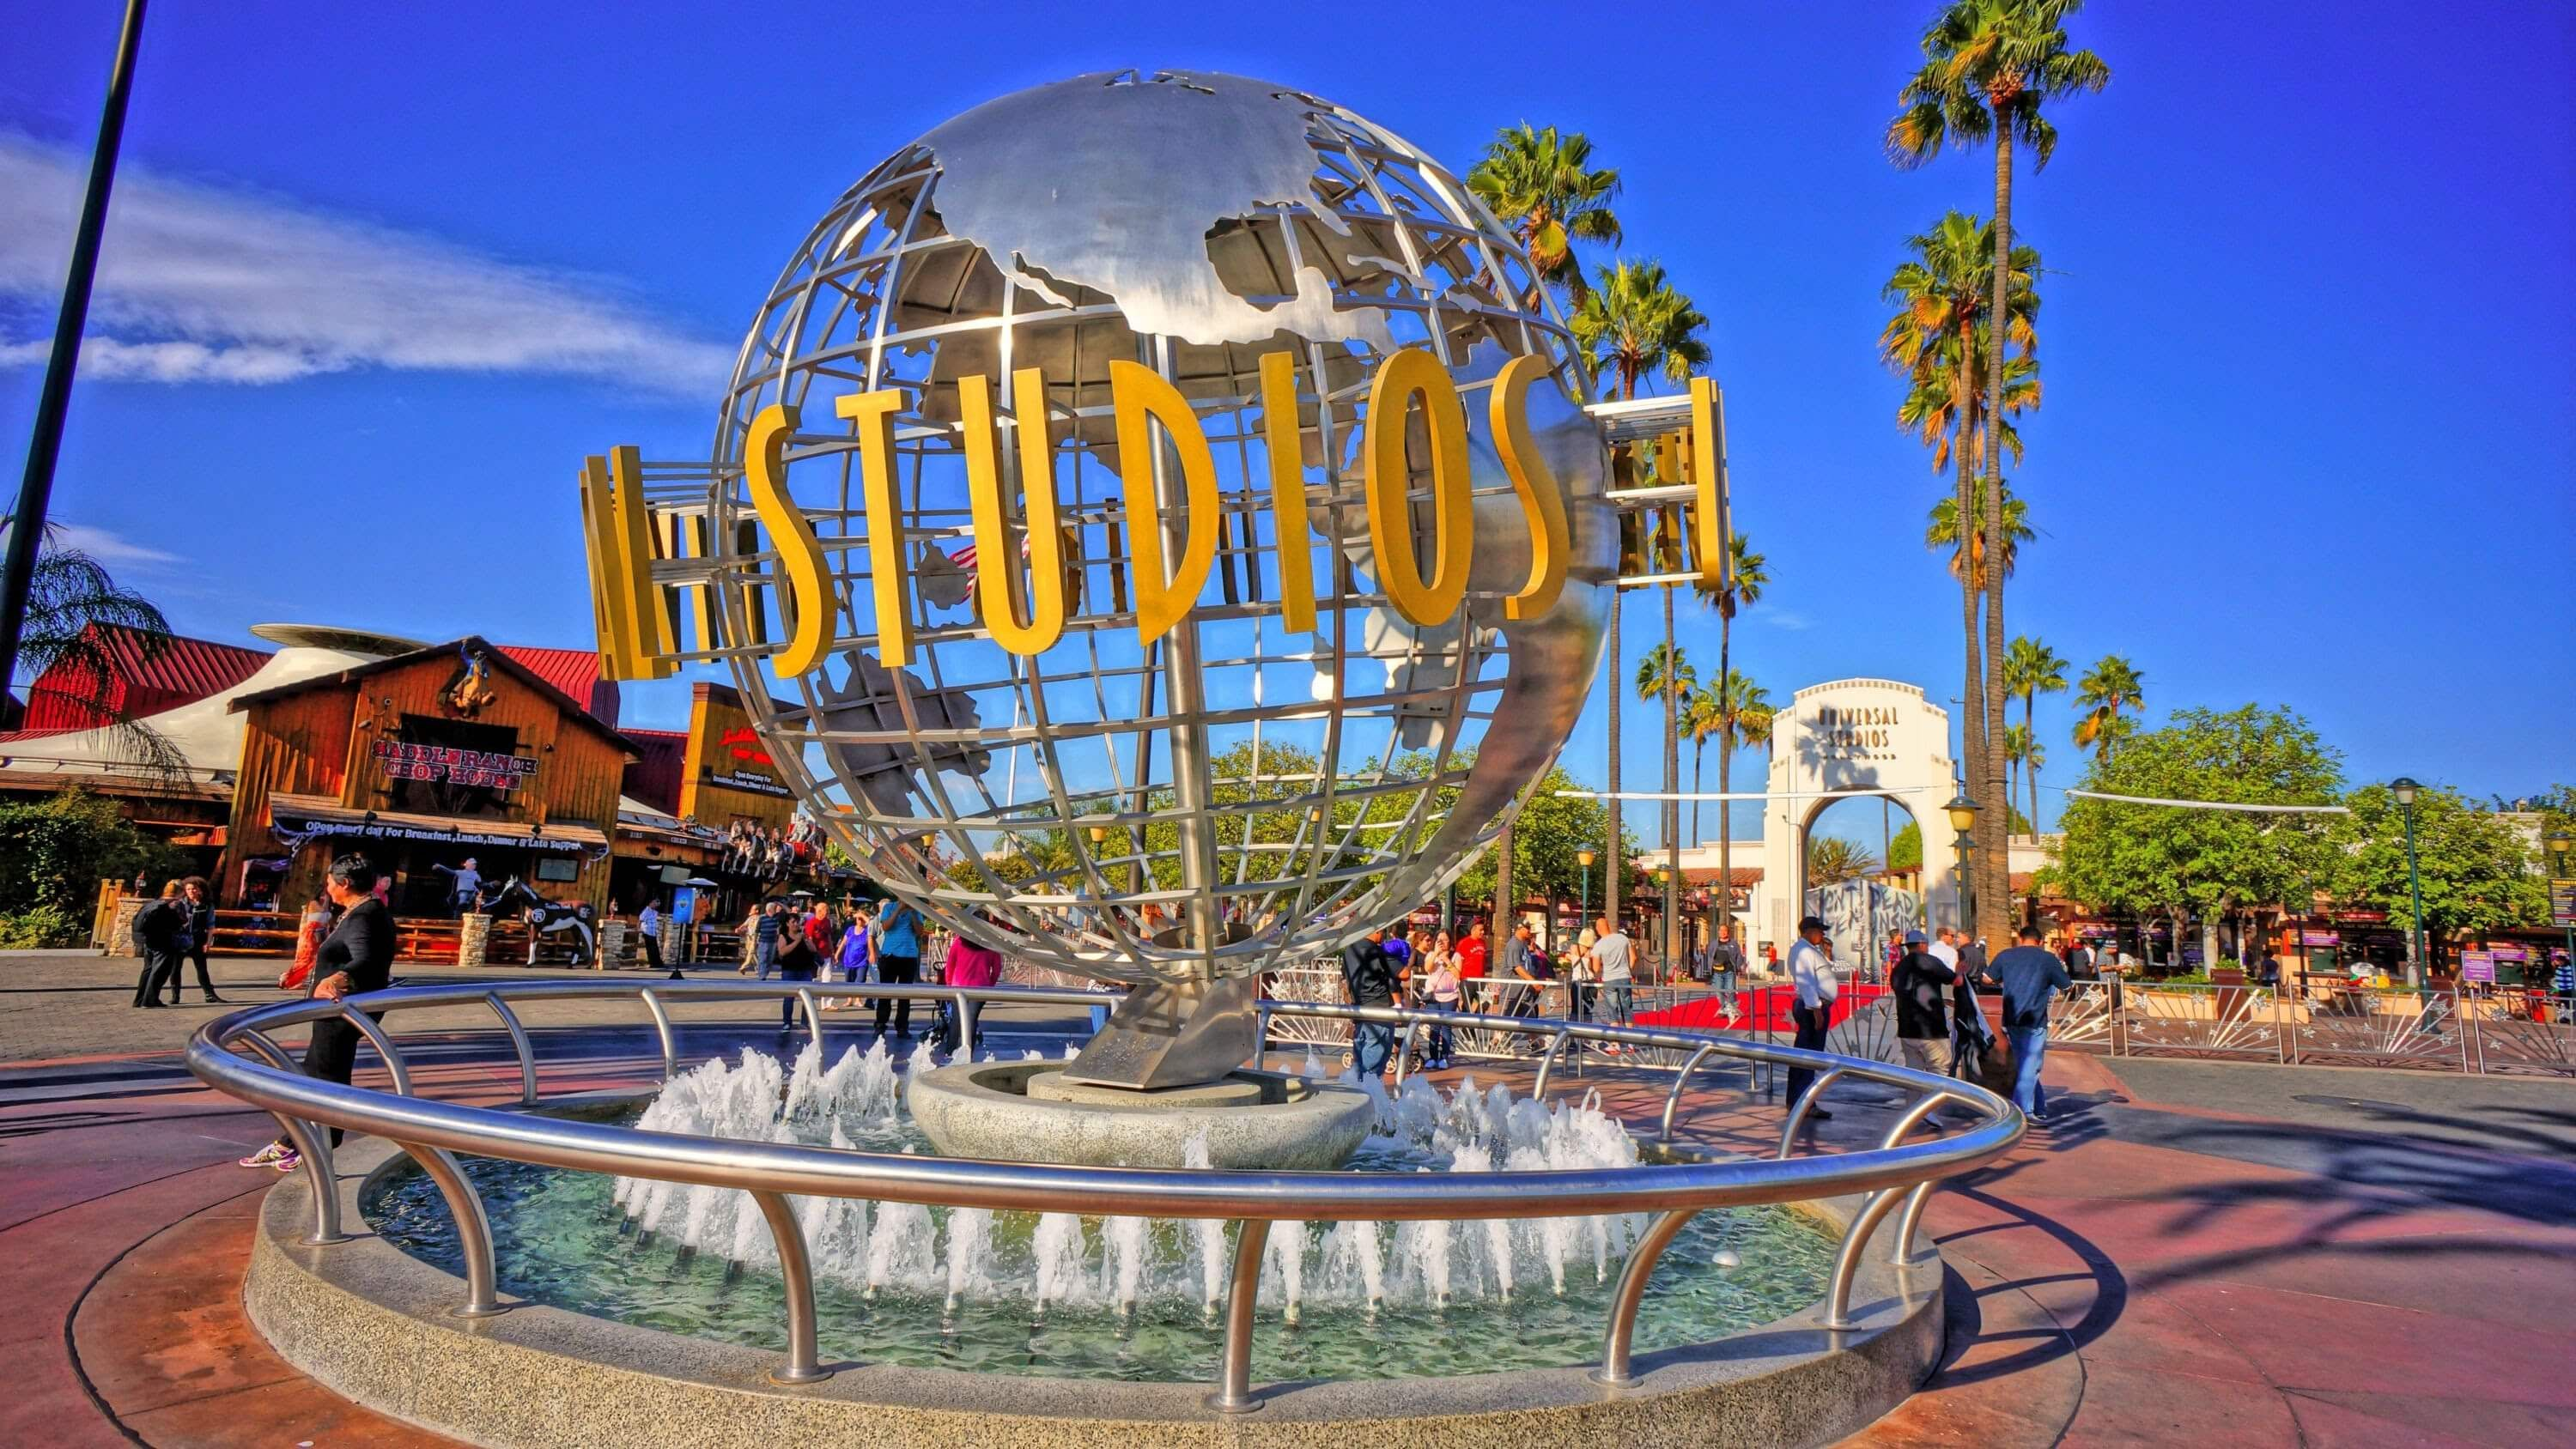 44 Awesome Things To Do In La Universal Studios Theme Park Los Angeles Parks Universal Studio Los Angeles